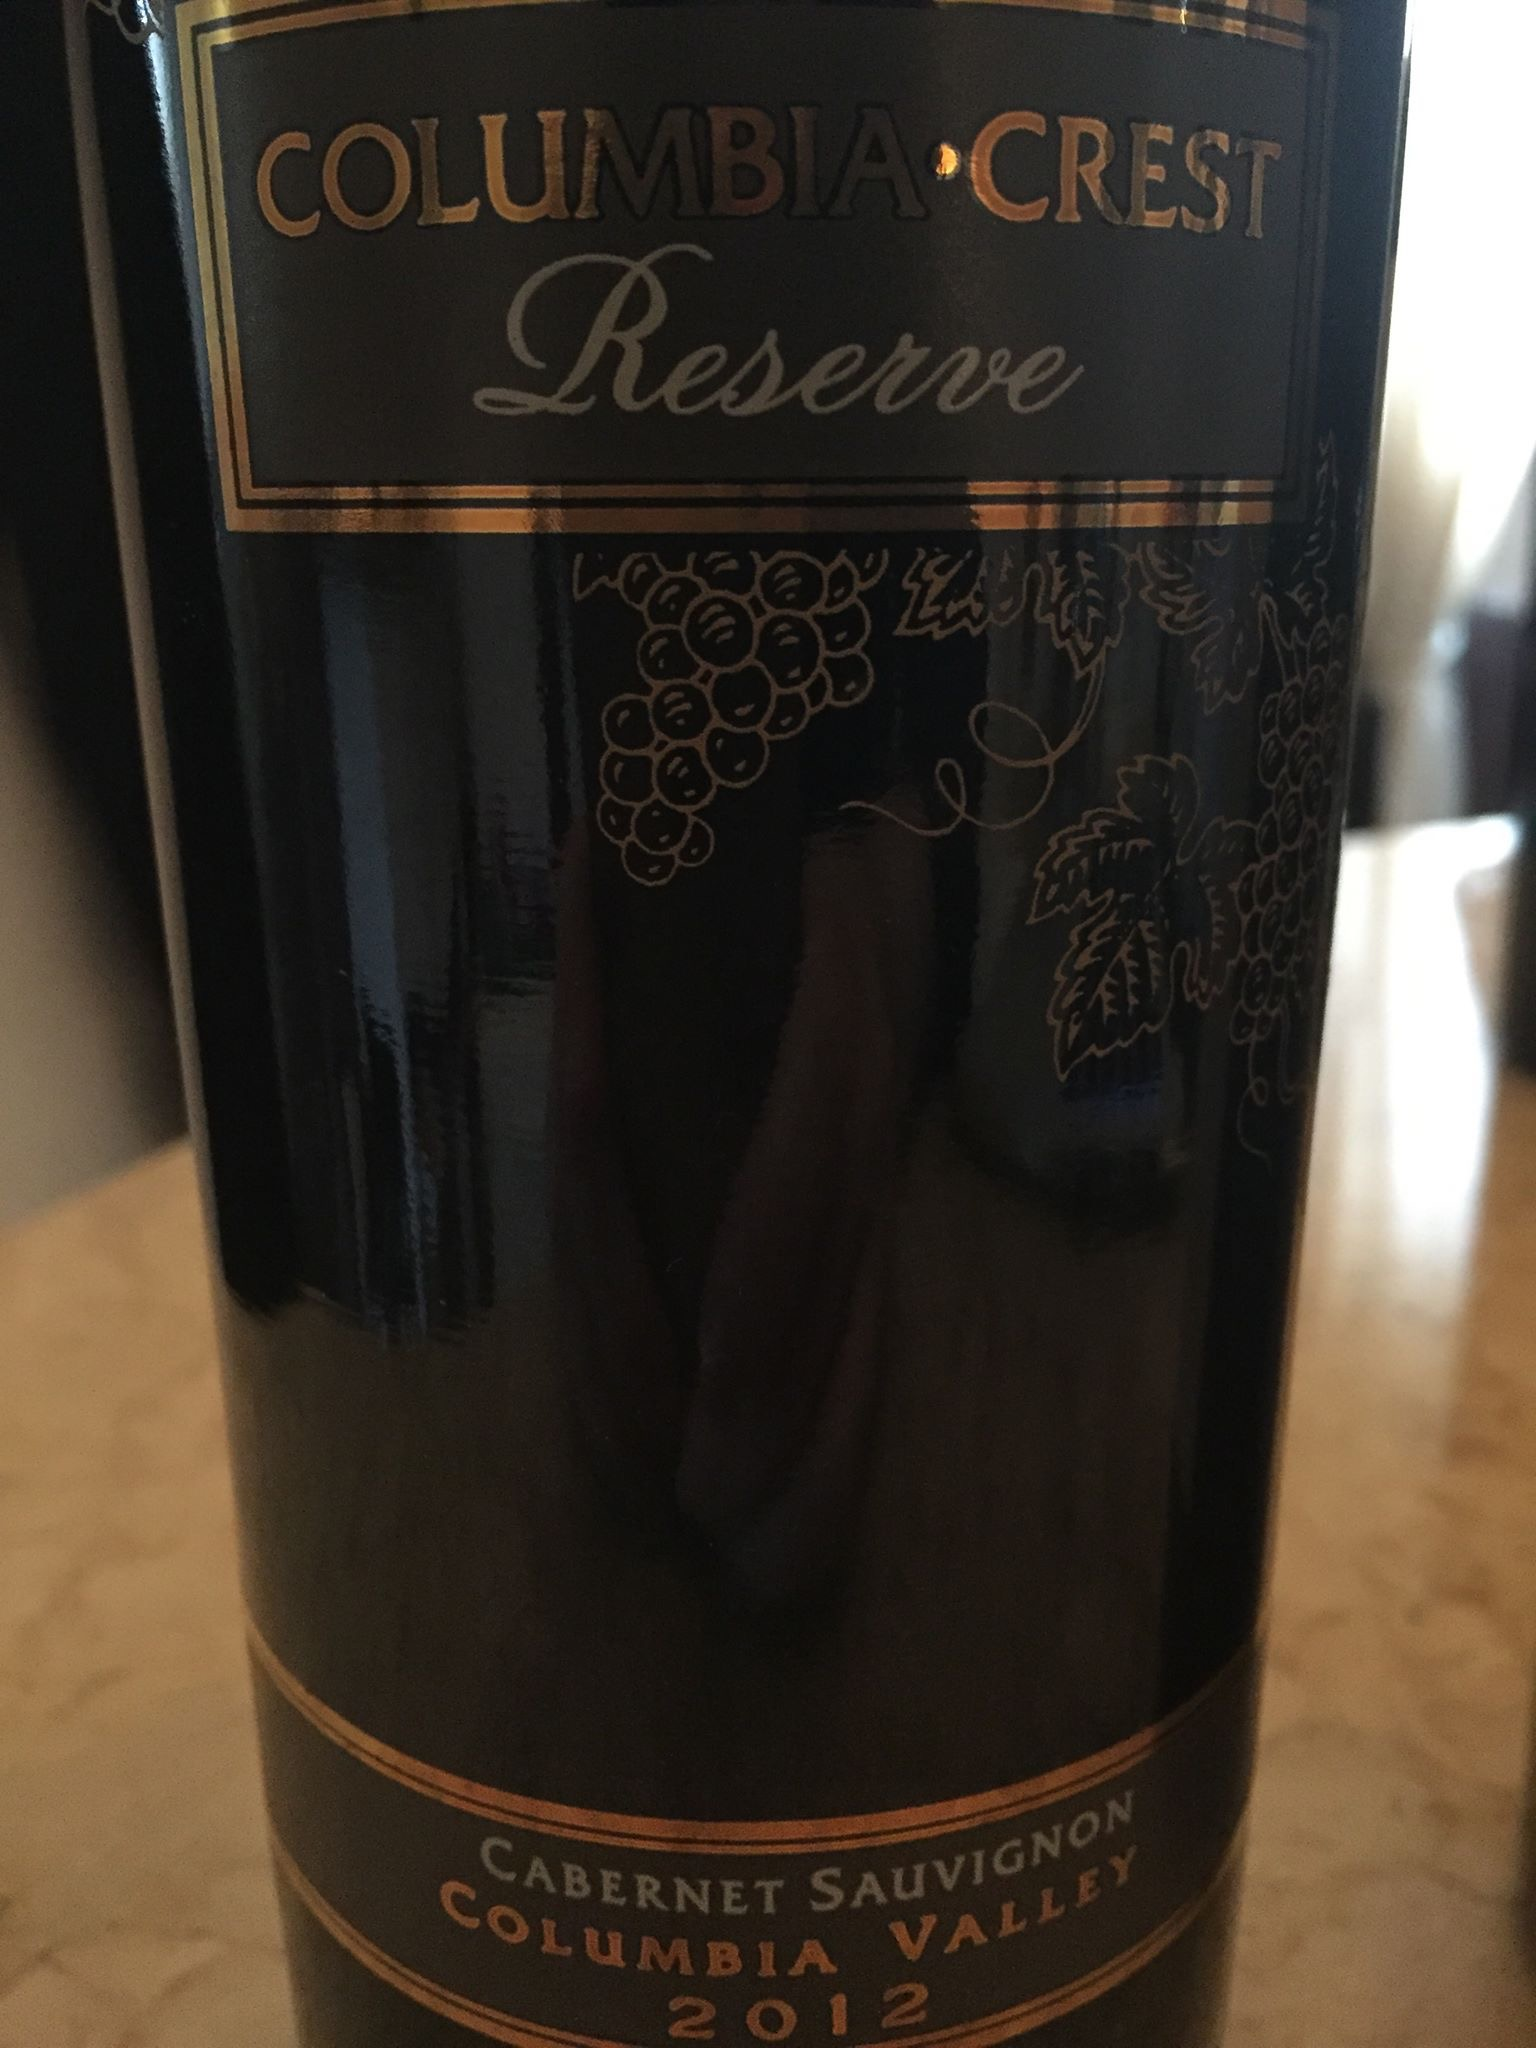 Columbia Crest – Cabernet Sauvignon Reserve 2012 – Columbia Valley – Washington